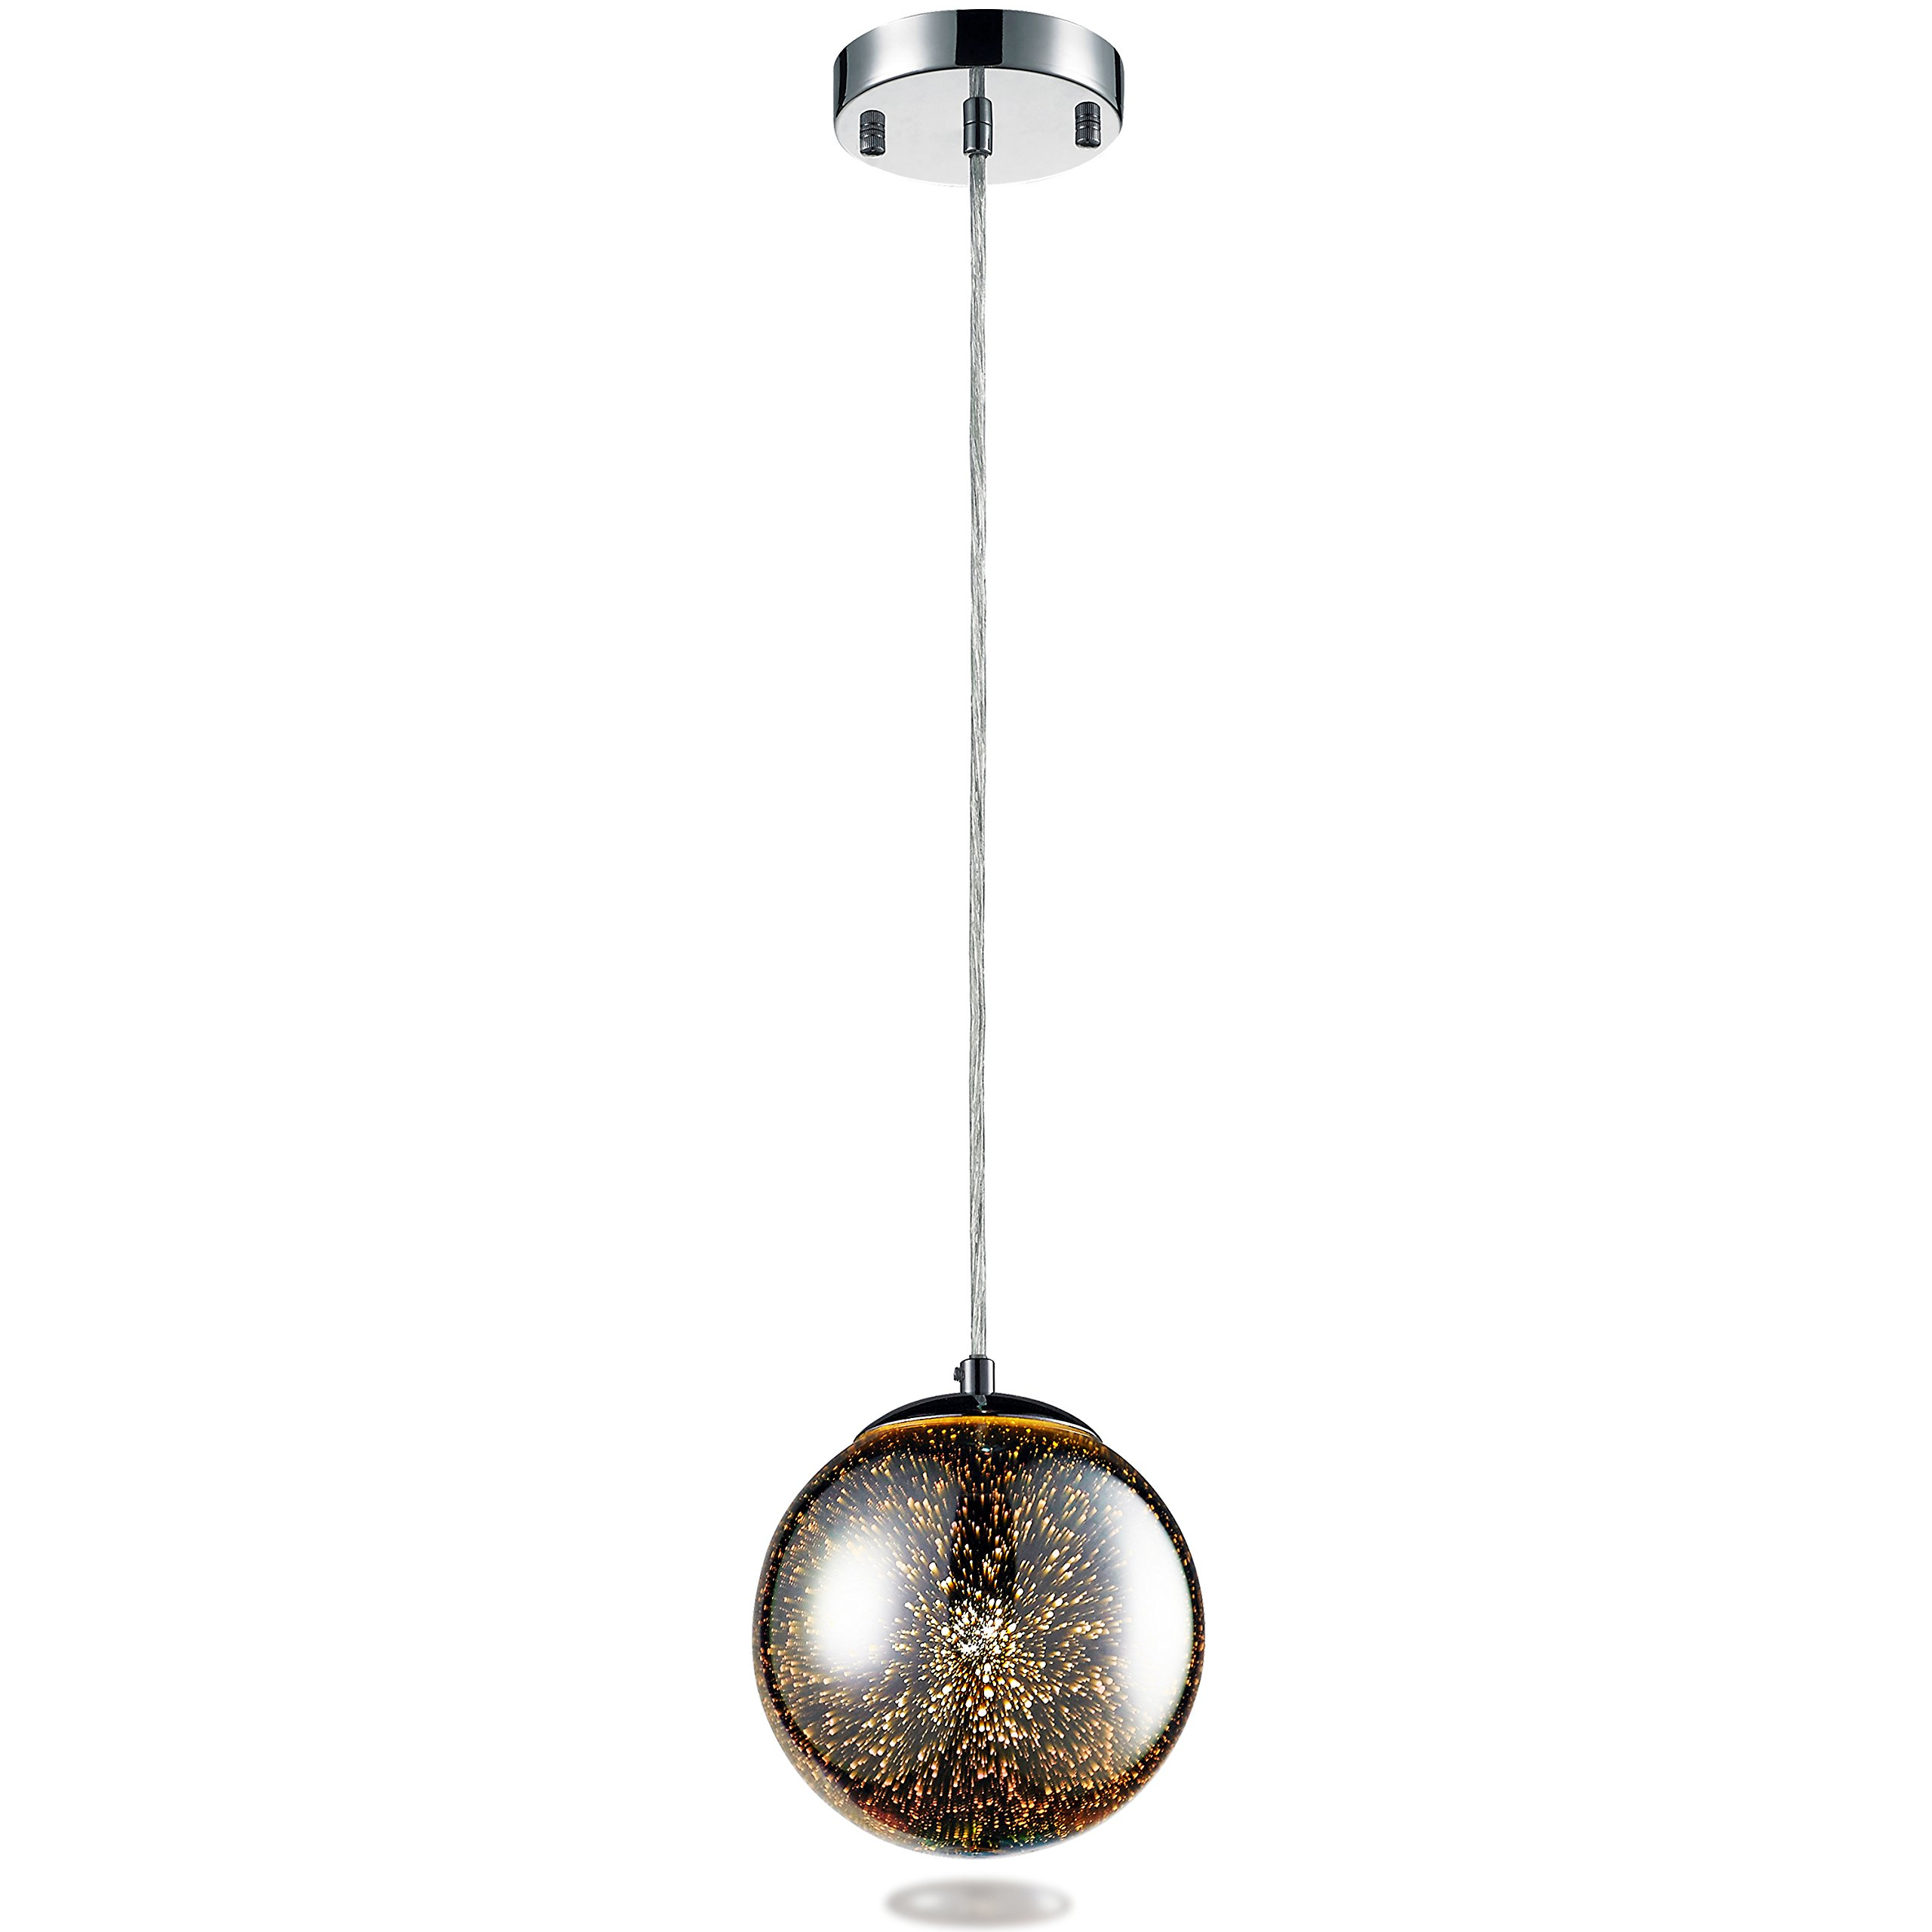 "SereneLife Home Lighting Fixture - 7.1"" Circular Sphere Shaped Dome Pendant Hanging Lamp Ceiling Light with Sculpted Glass Accent, Adjustable Length and Screw-in Bulb Socket (SLLMP16)"